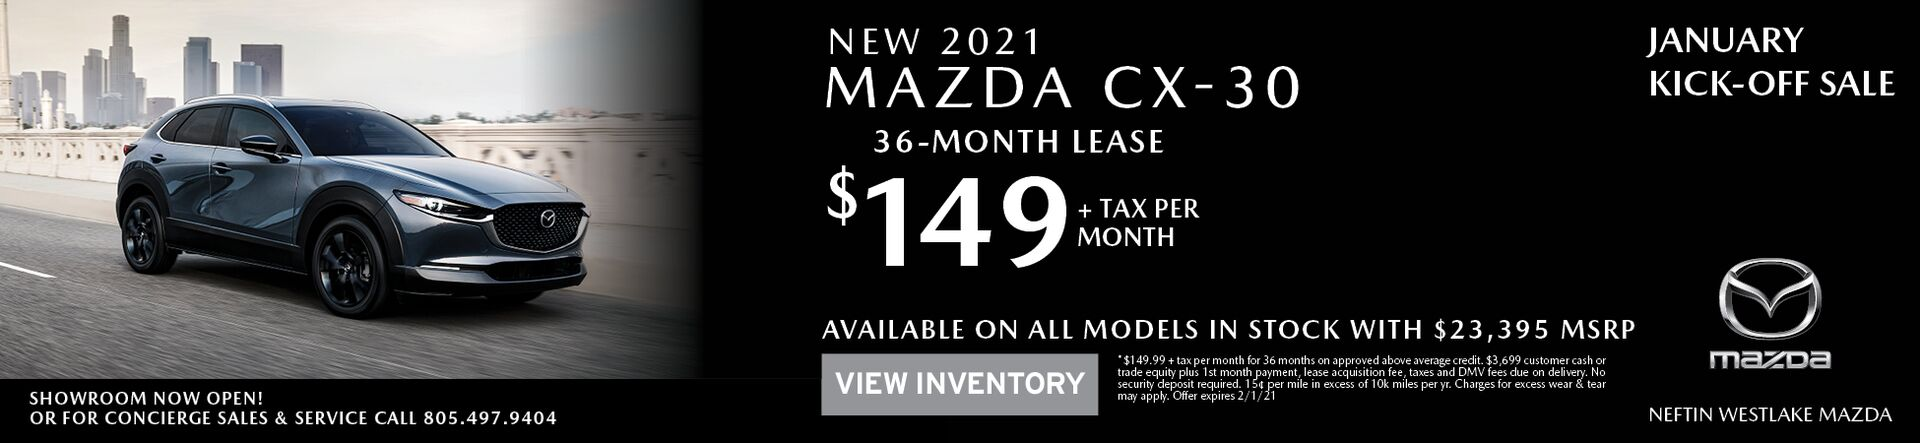 January '21 CX-30 Lease Offer